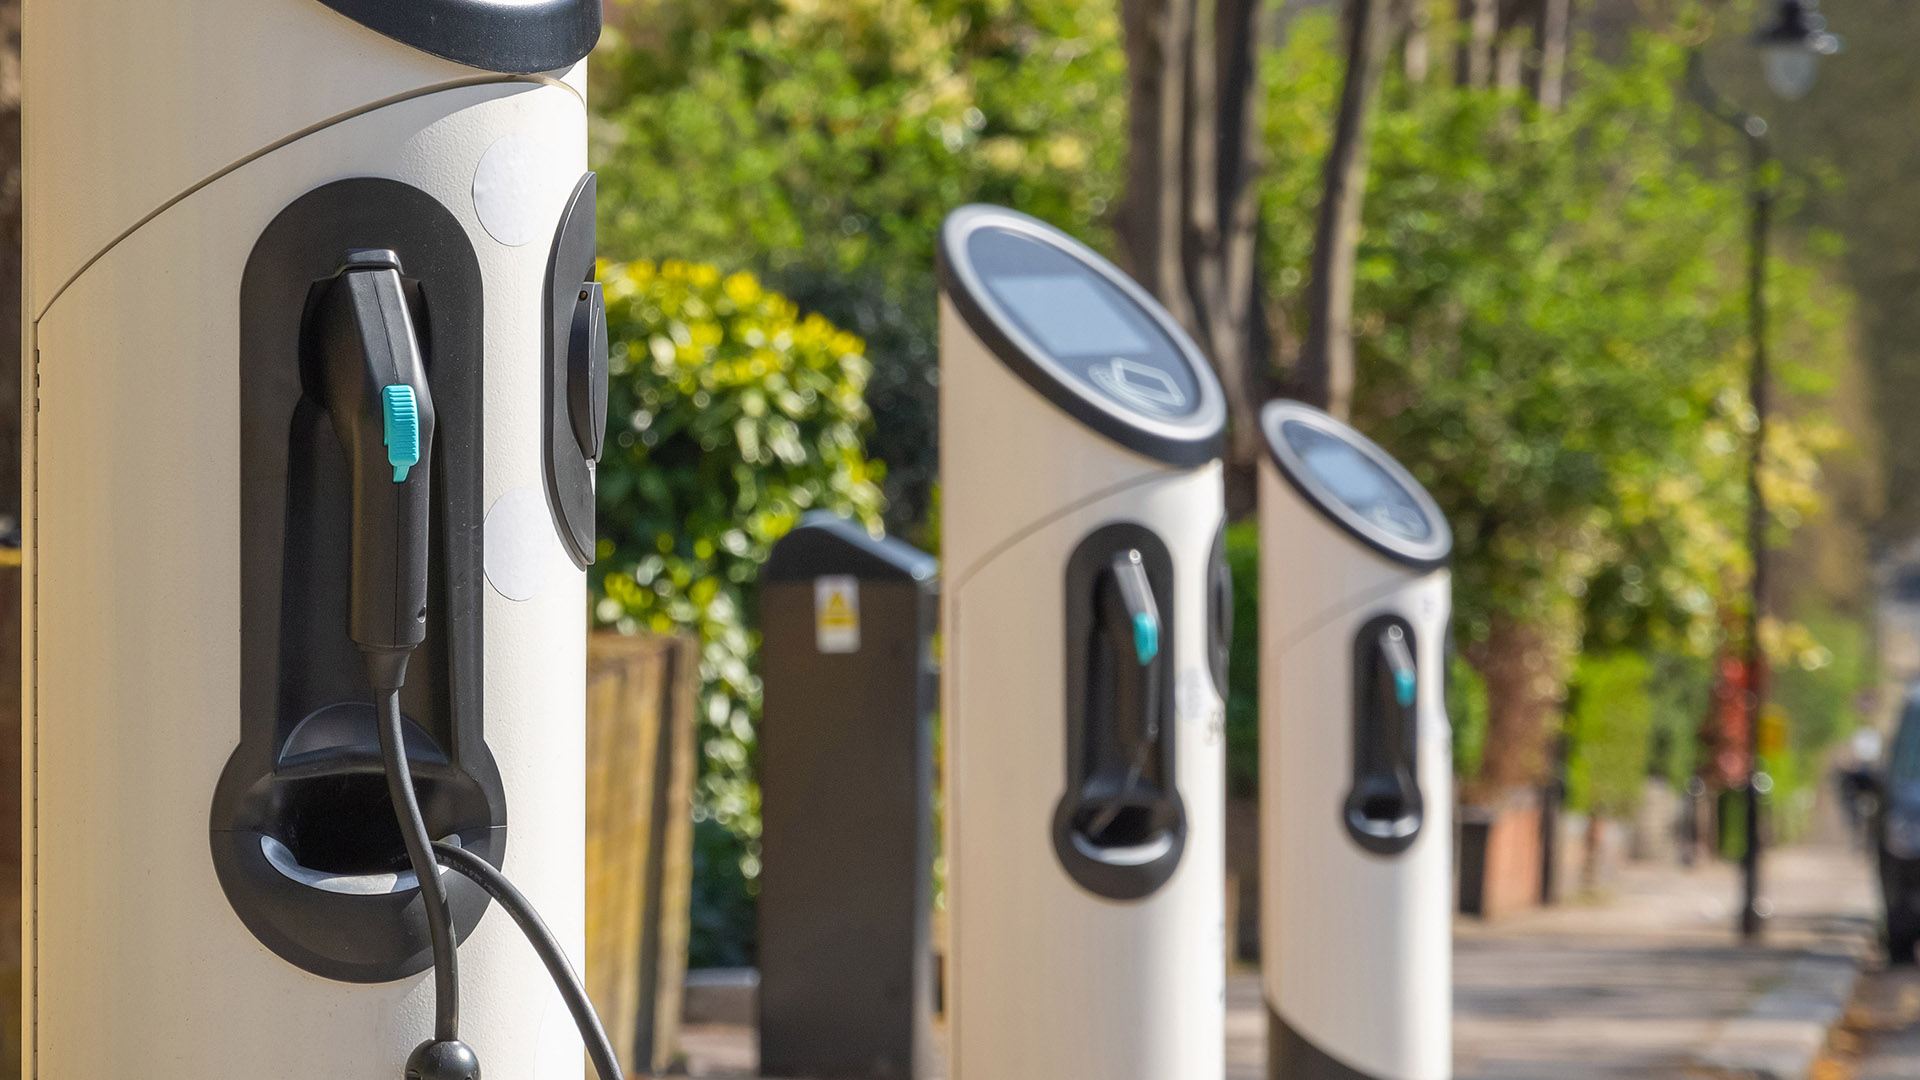 Japan embarks on first pilot for EV charging on public roads